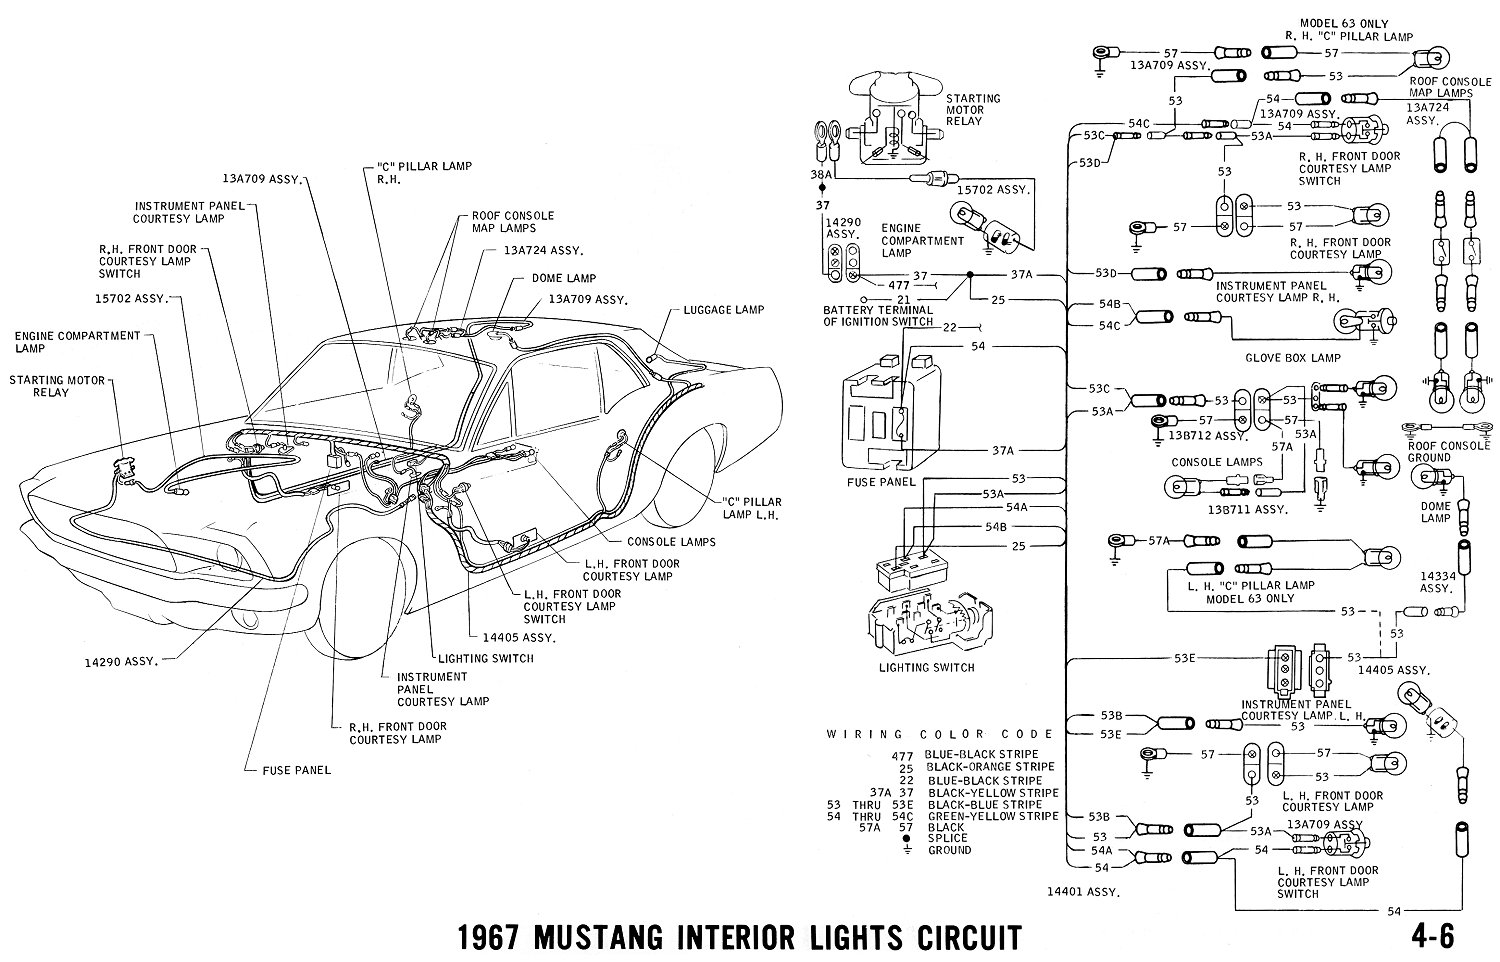 hight resolution of 1967 mustang wiring and vacuum diagrams average joe restoration 67 mustang wiring harness diagram 1967 mustang wiring harness diagram